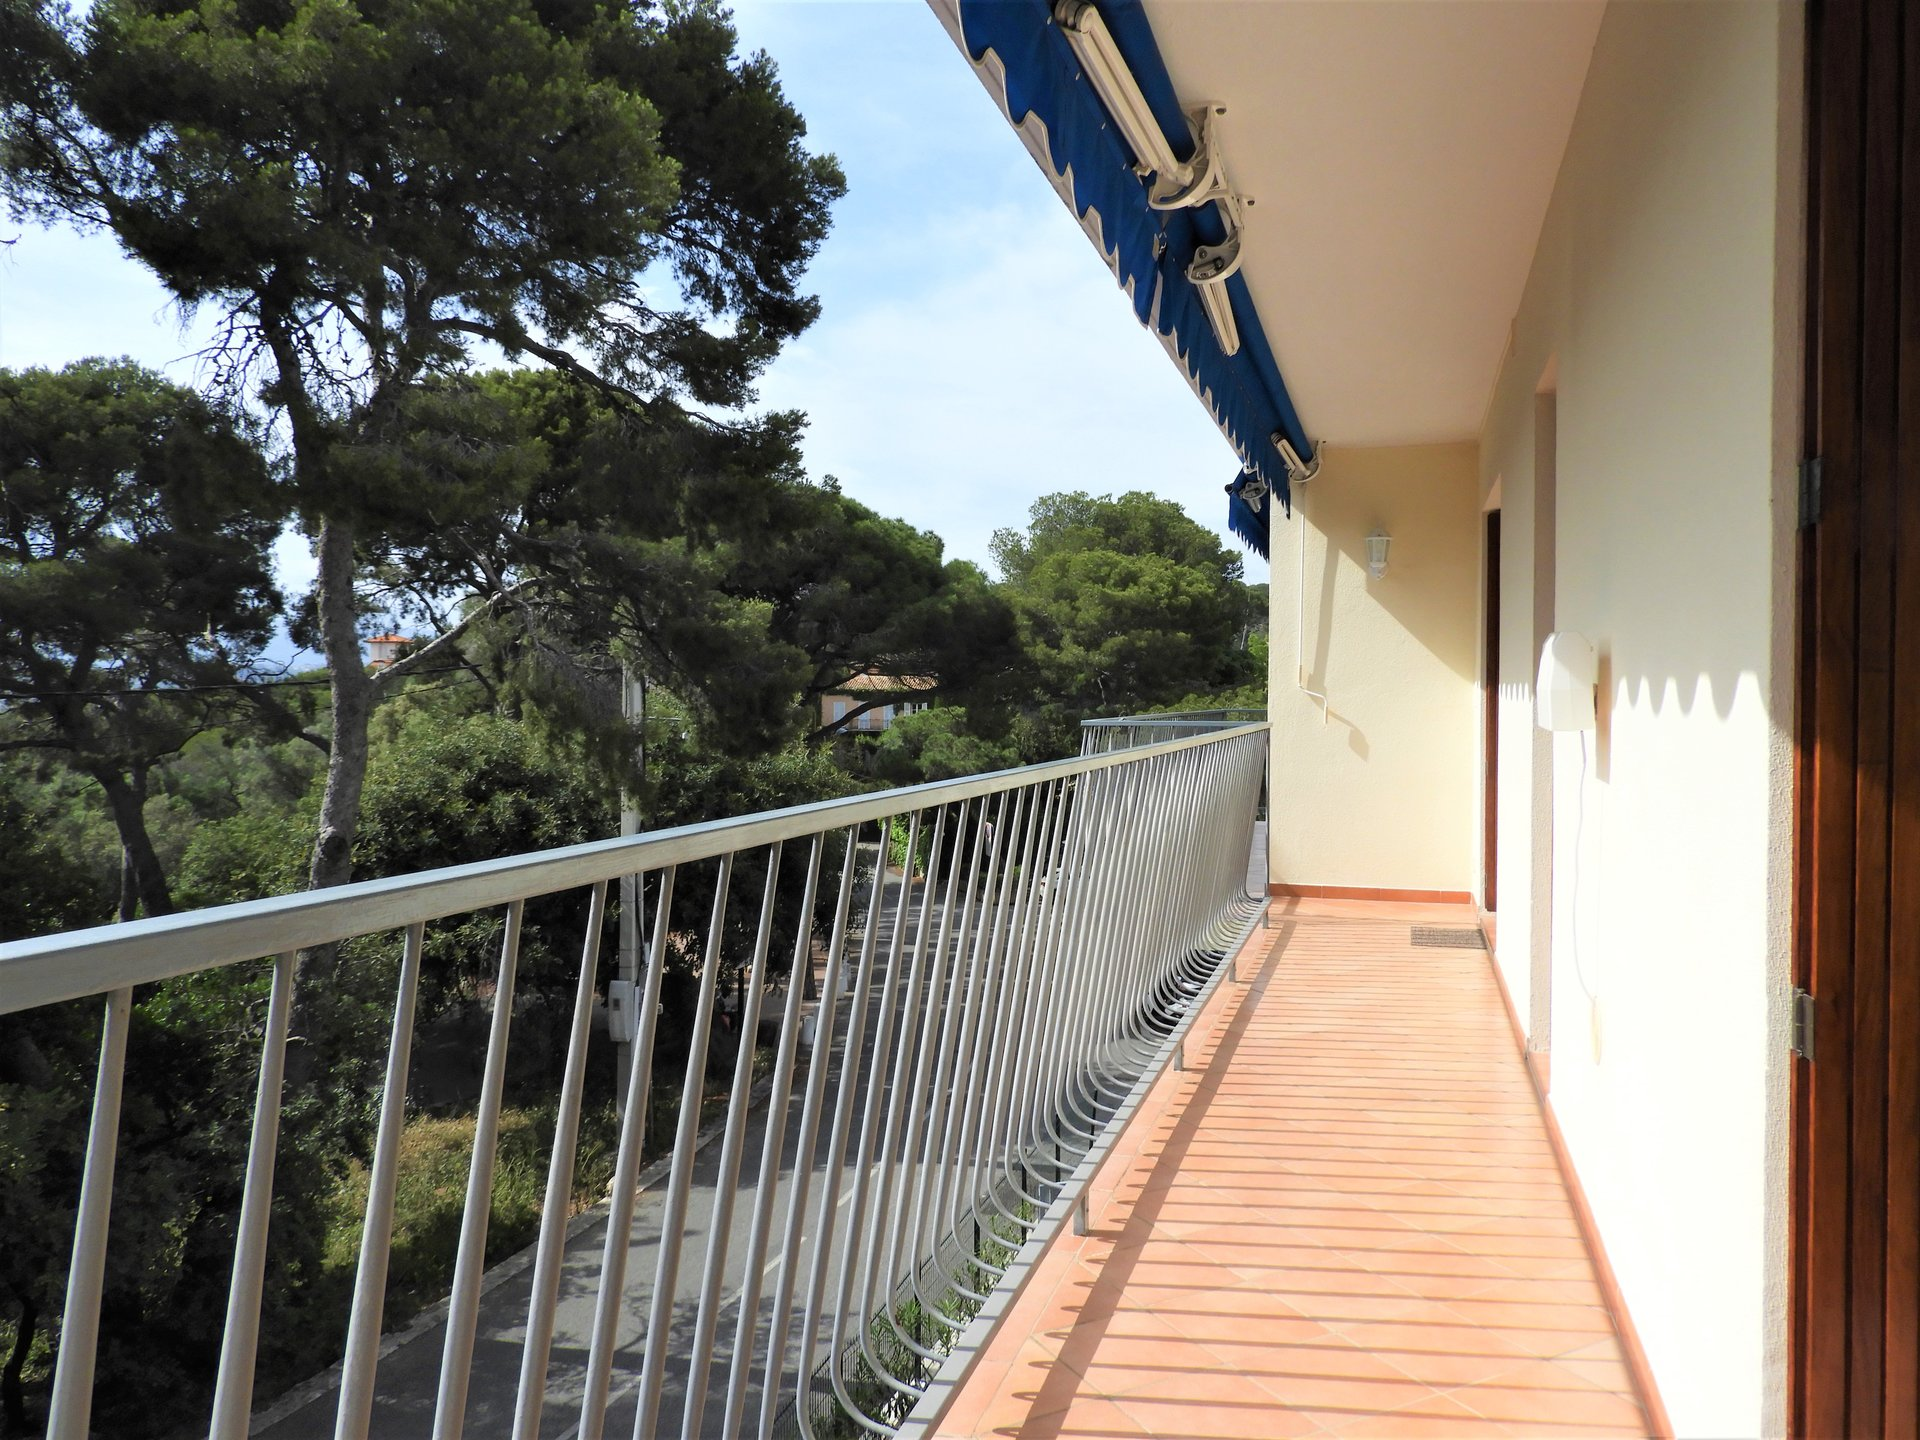 MONT BORON - 2 BEDROOM APART